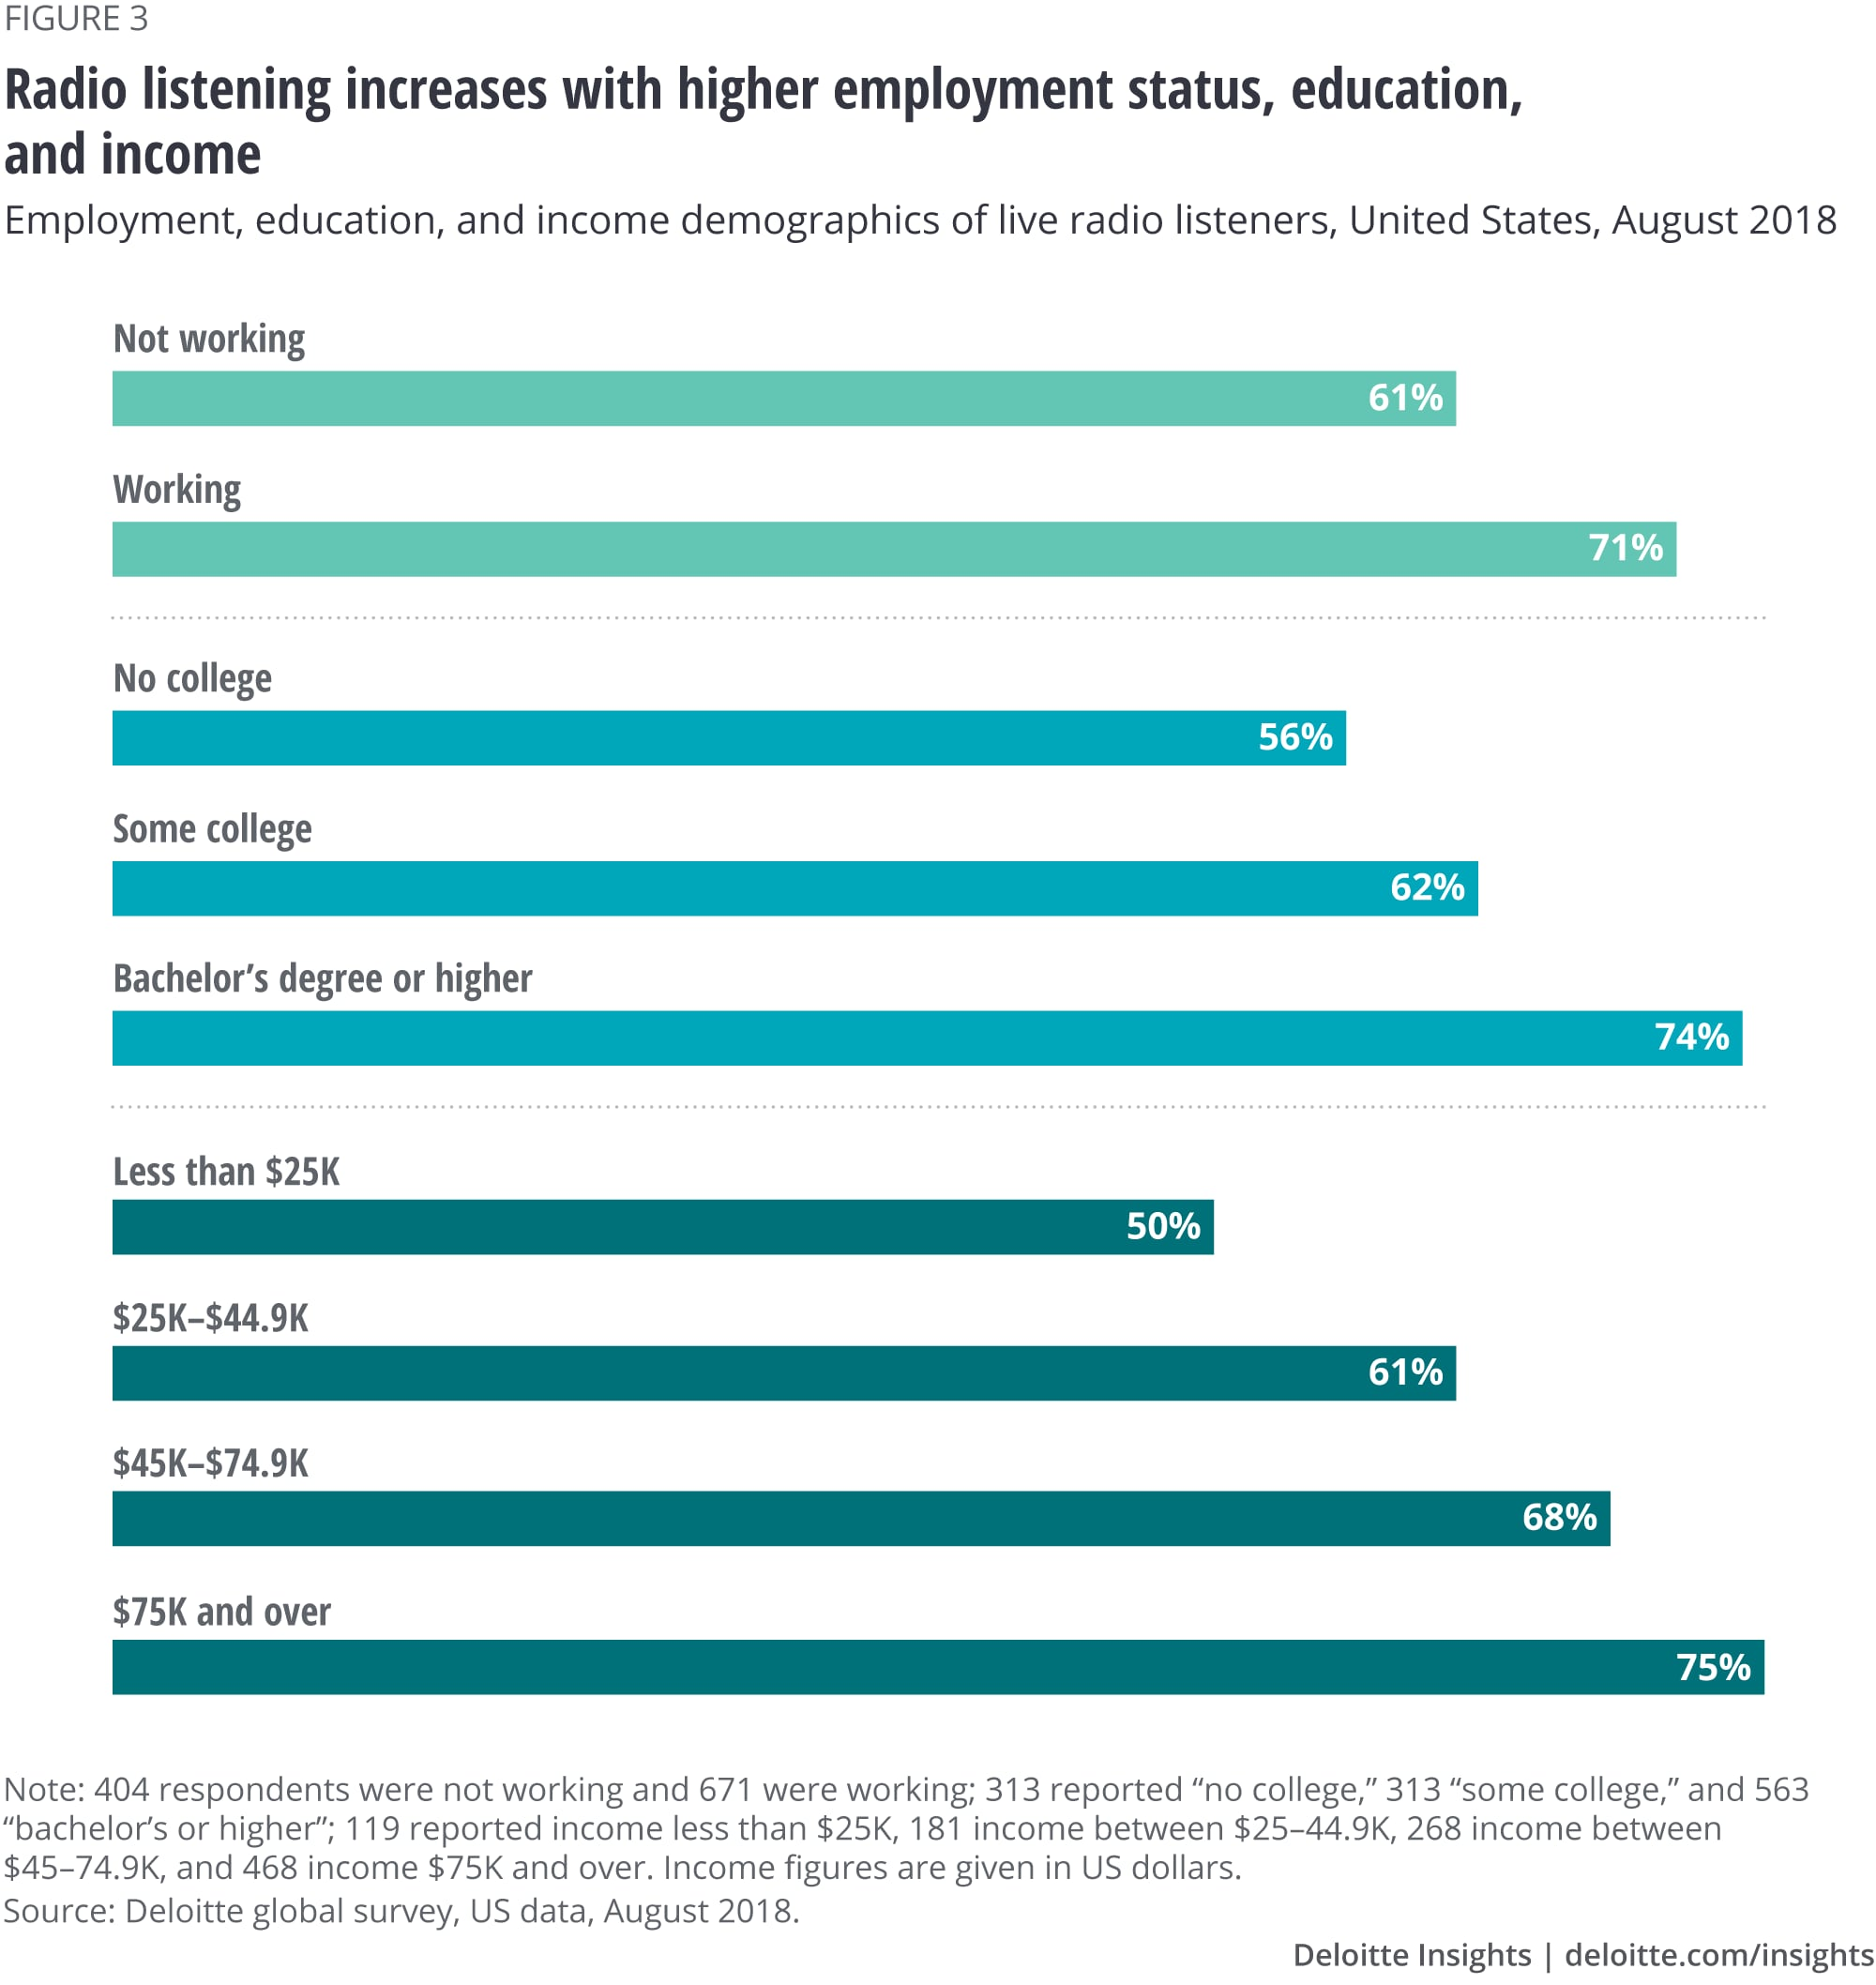 Radio listening increases with higher employment status, education, and income